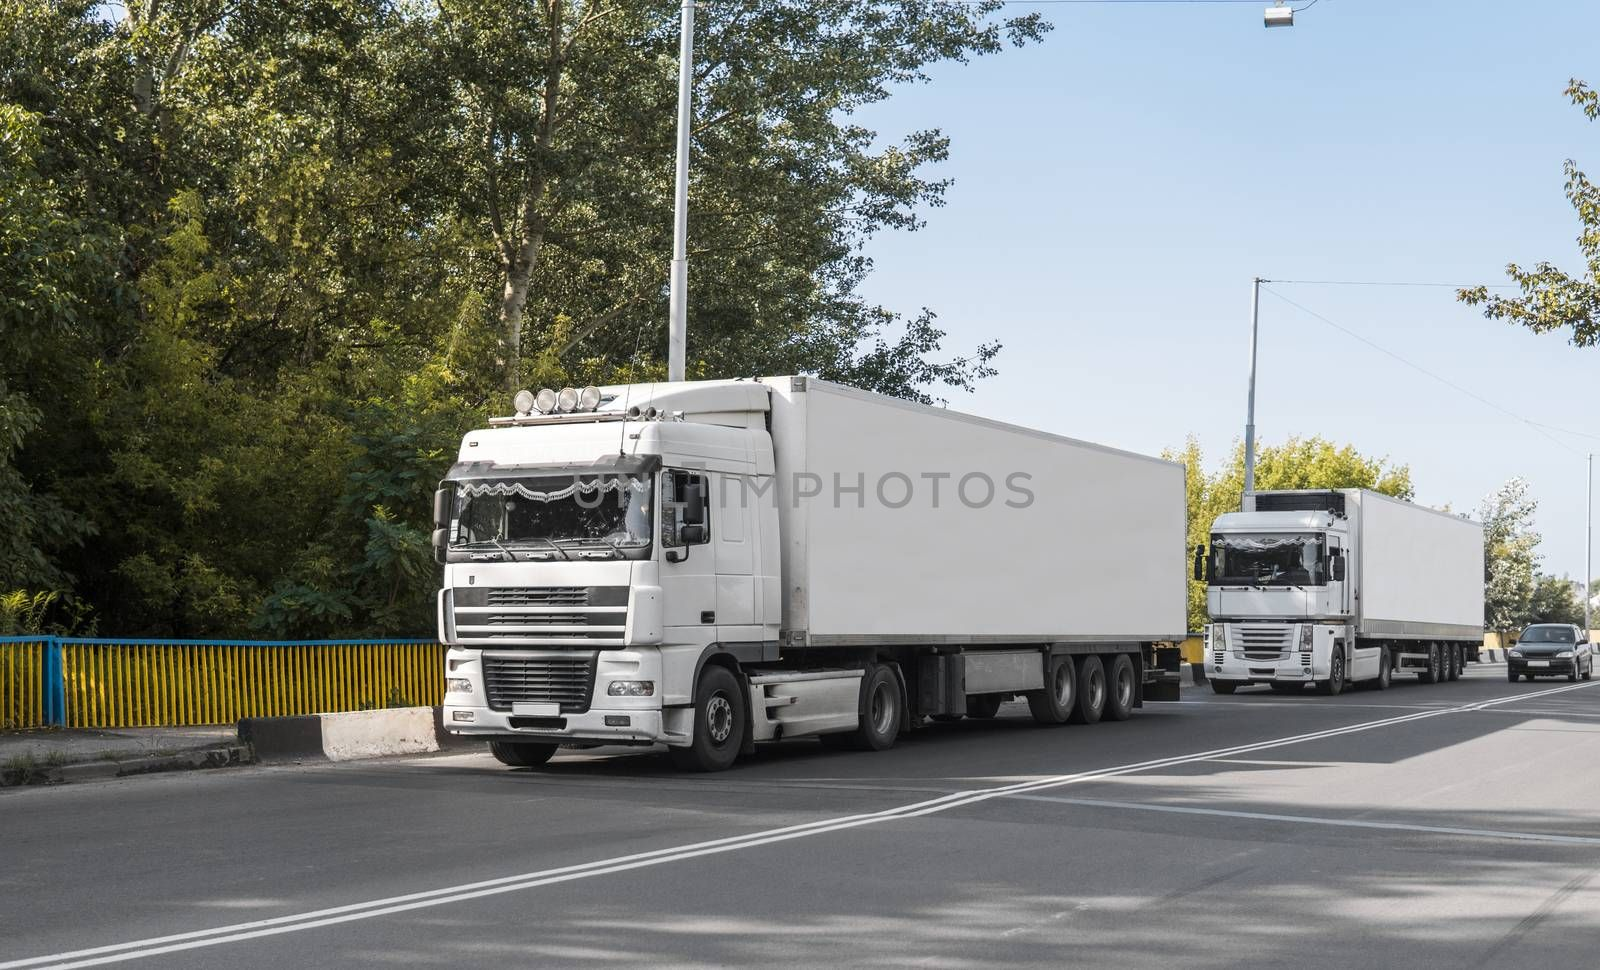 Two trucks on a road against blue sky and trees, cargo transportation concept